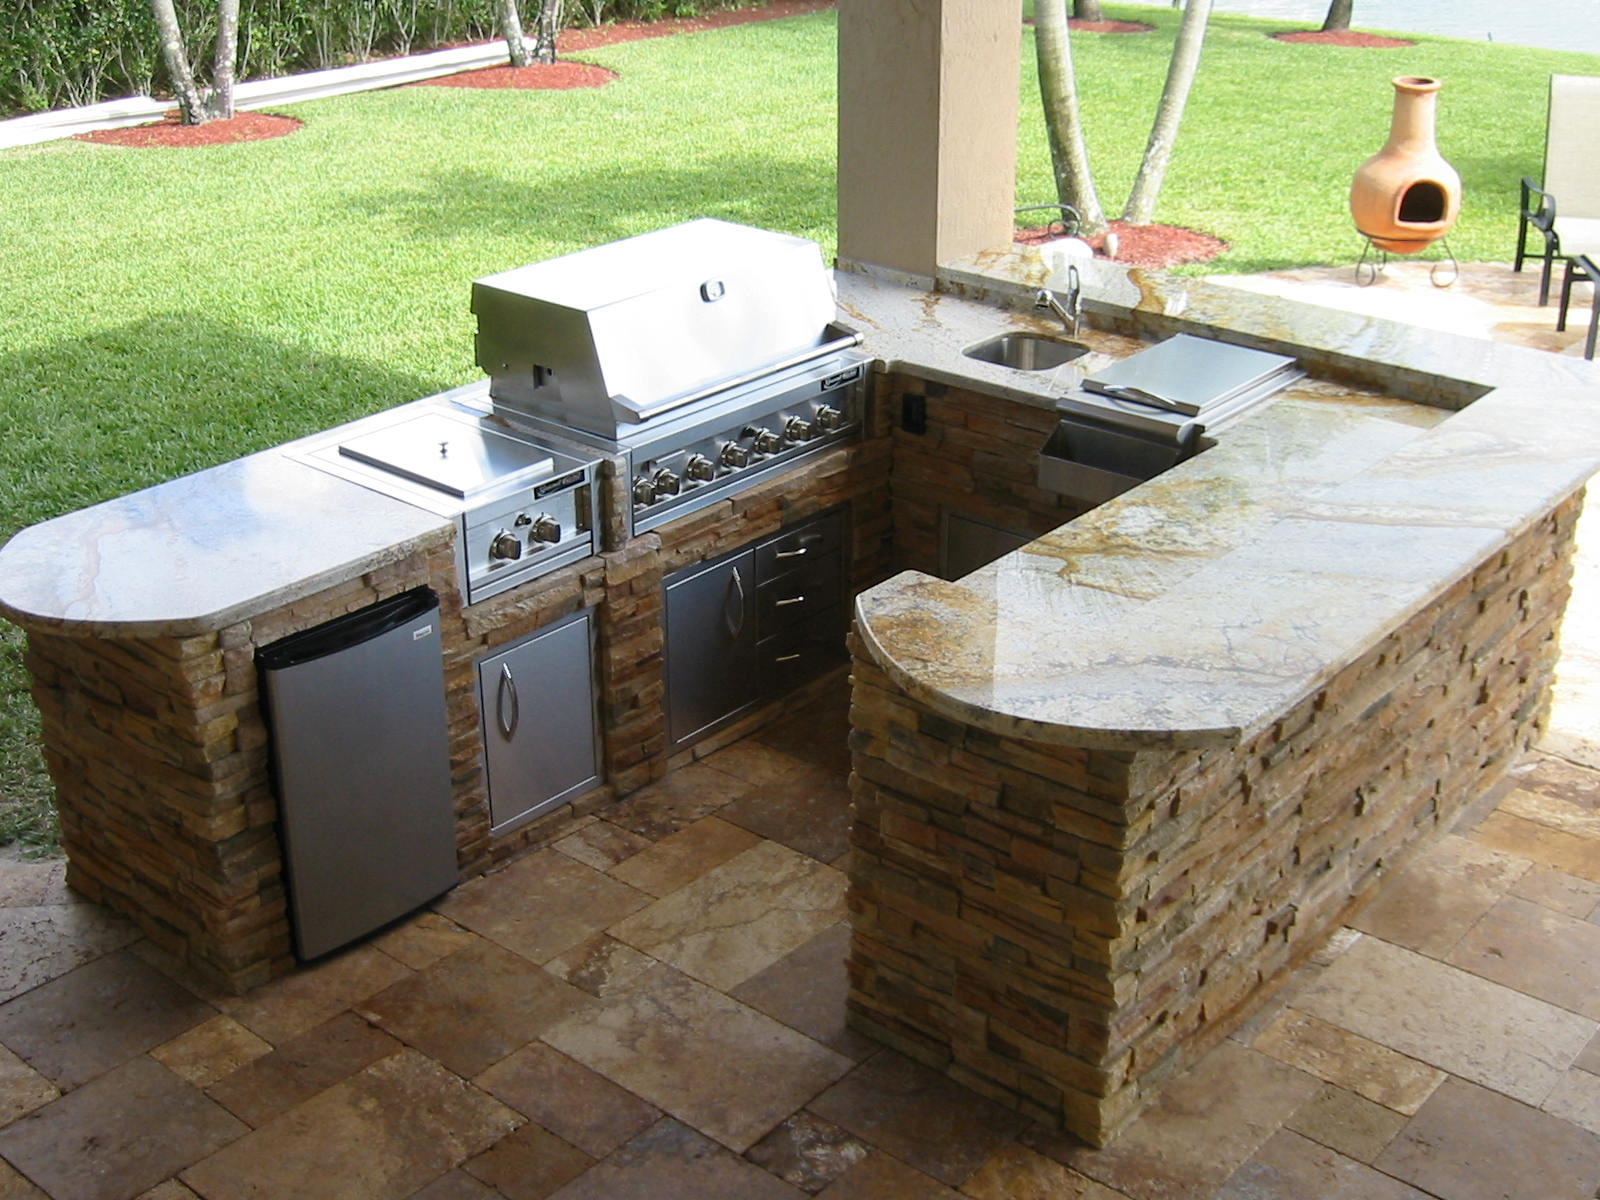 Outdoor kitchen depot outdoor kitchen building and design for Outdoor kitchen ideas plans